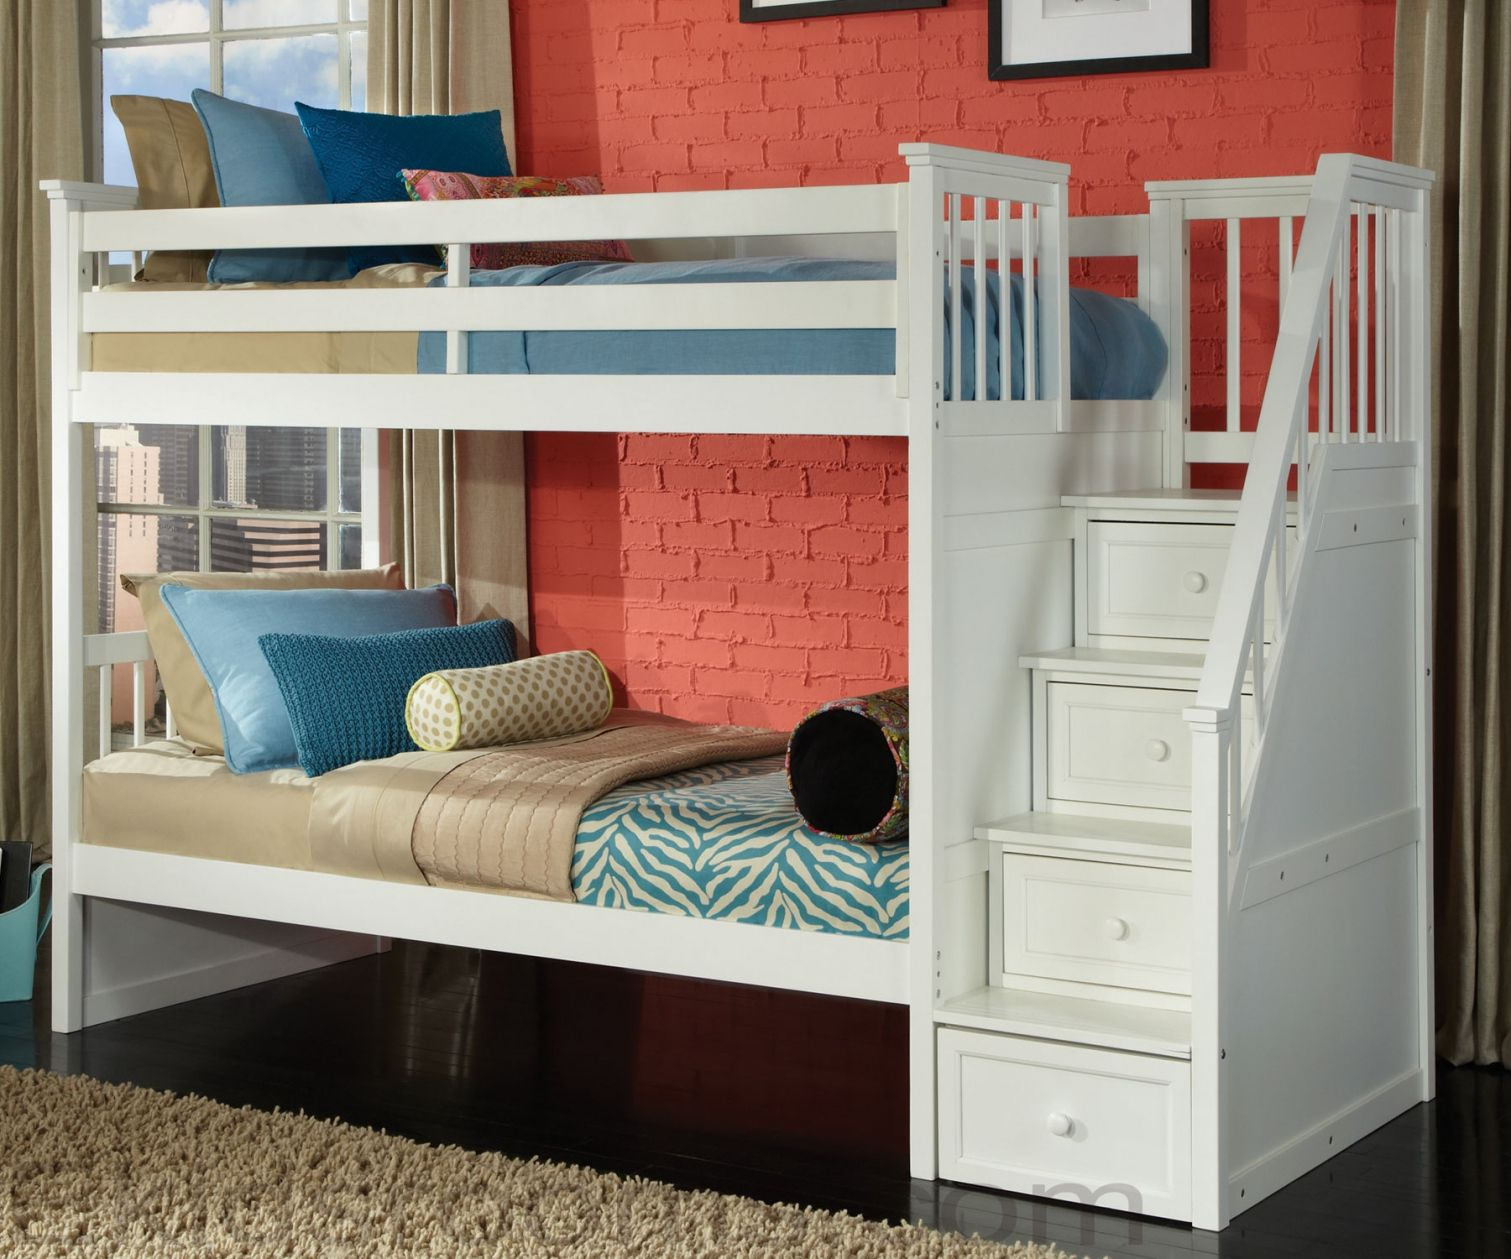 30 Bunk Beds With Stairs Under 500 Interior Design Bedroom Ideas On A Budget Check More At Http Bill Bunk Beds With Stairs Bunk Bed Designs House Bunk Bed